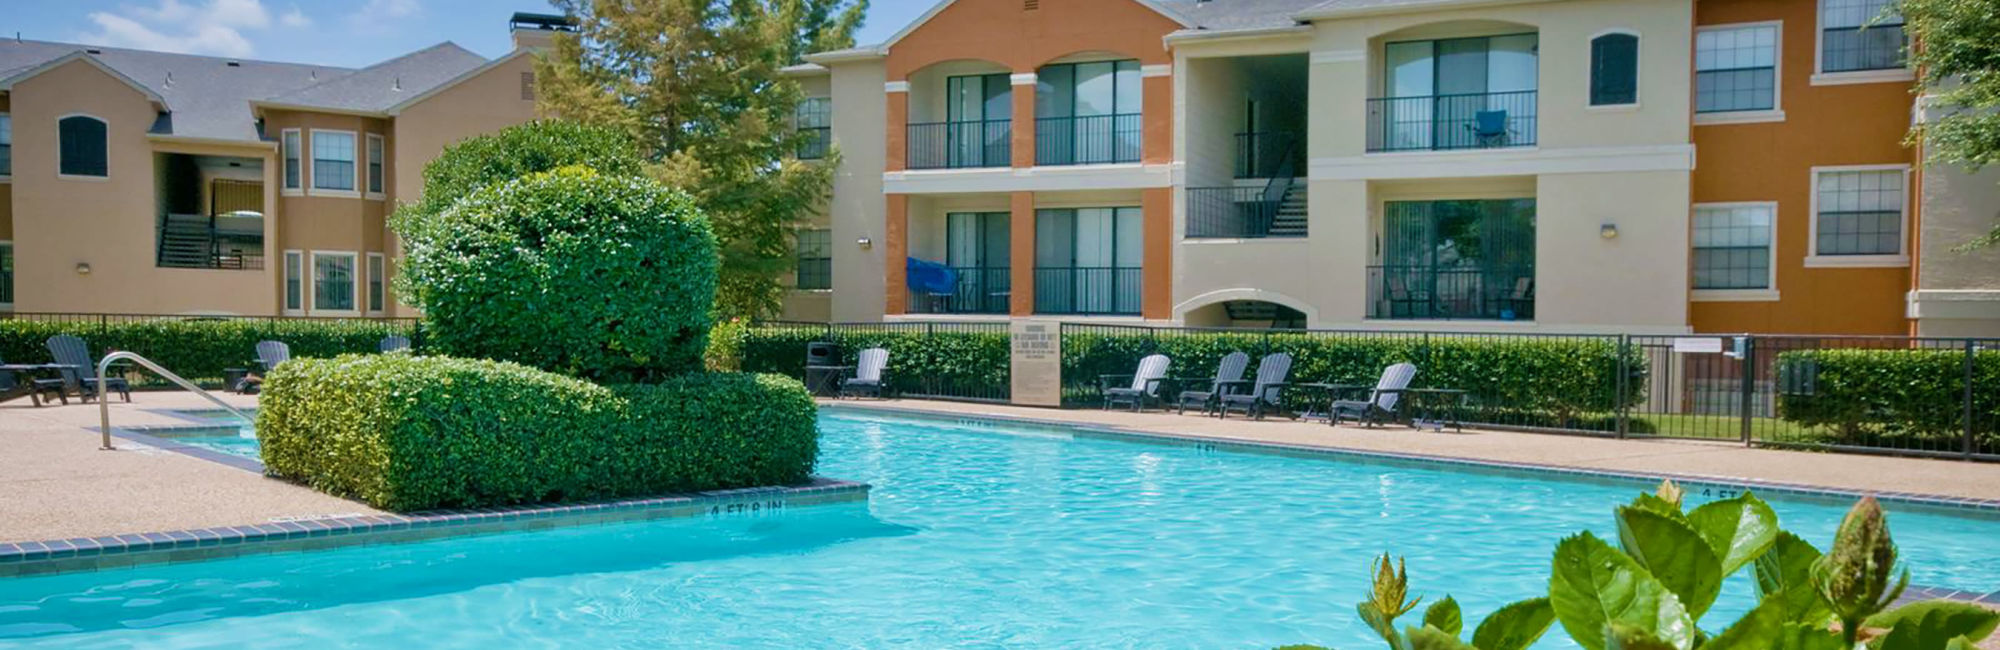 Apartments at Rockbrook Creek in Lewisville, Texas